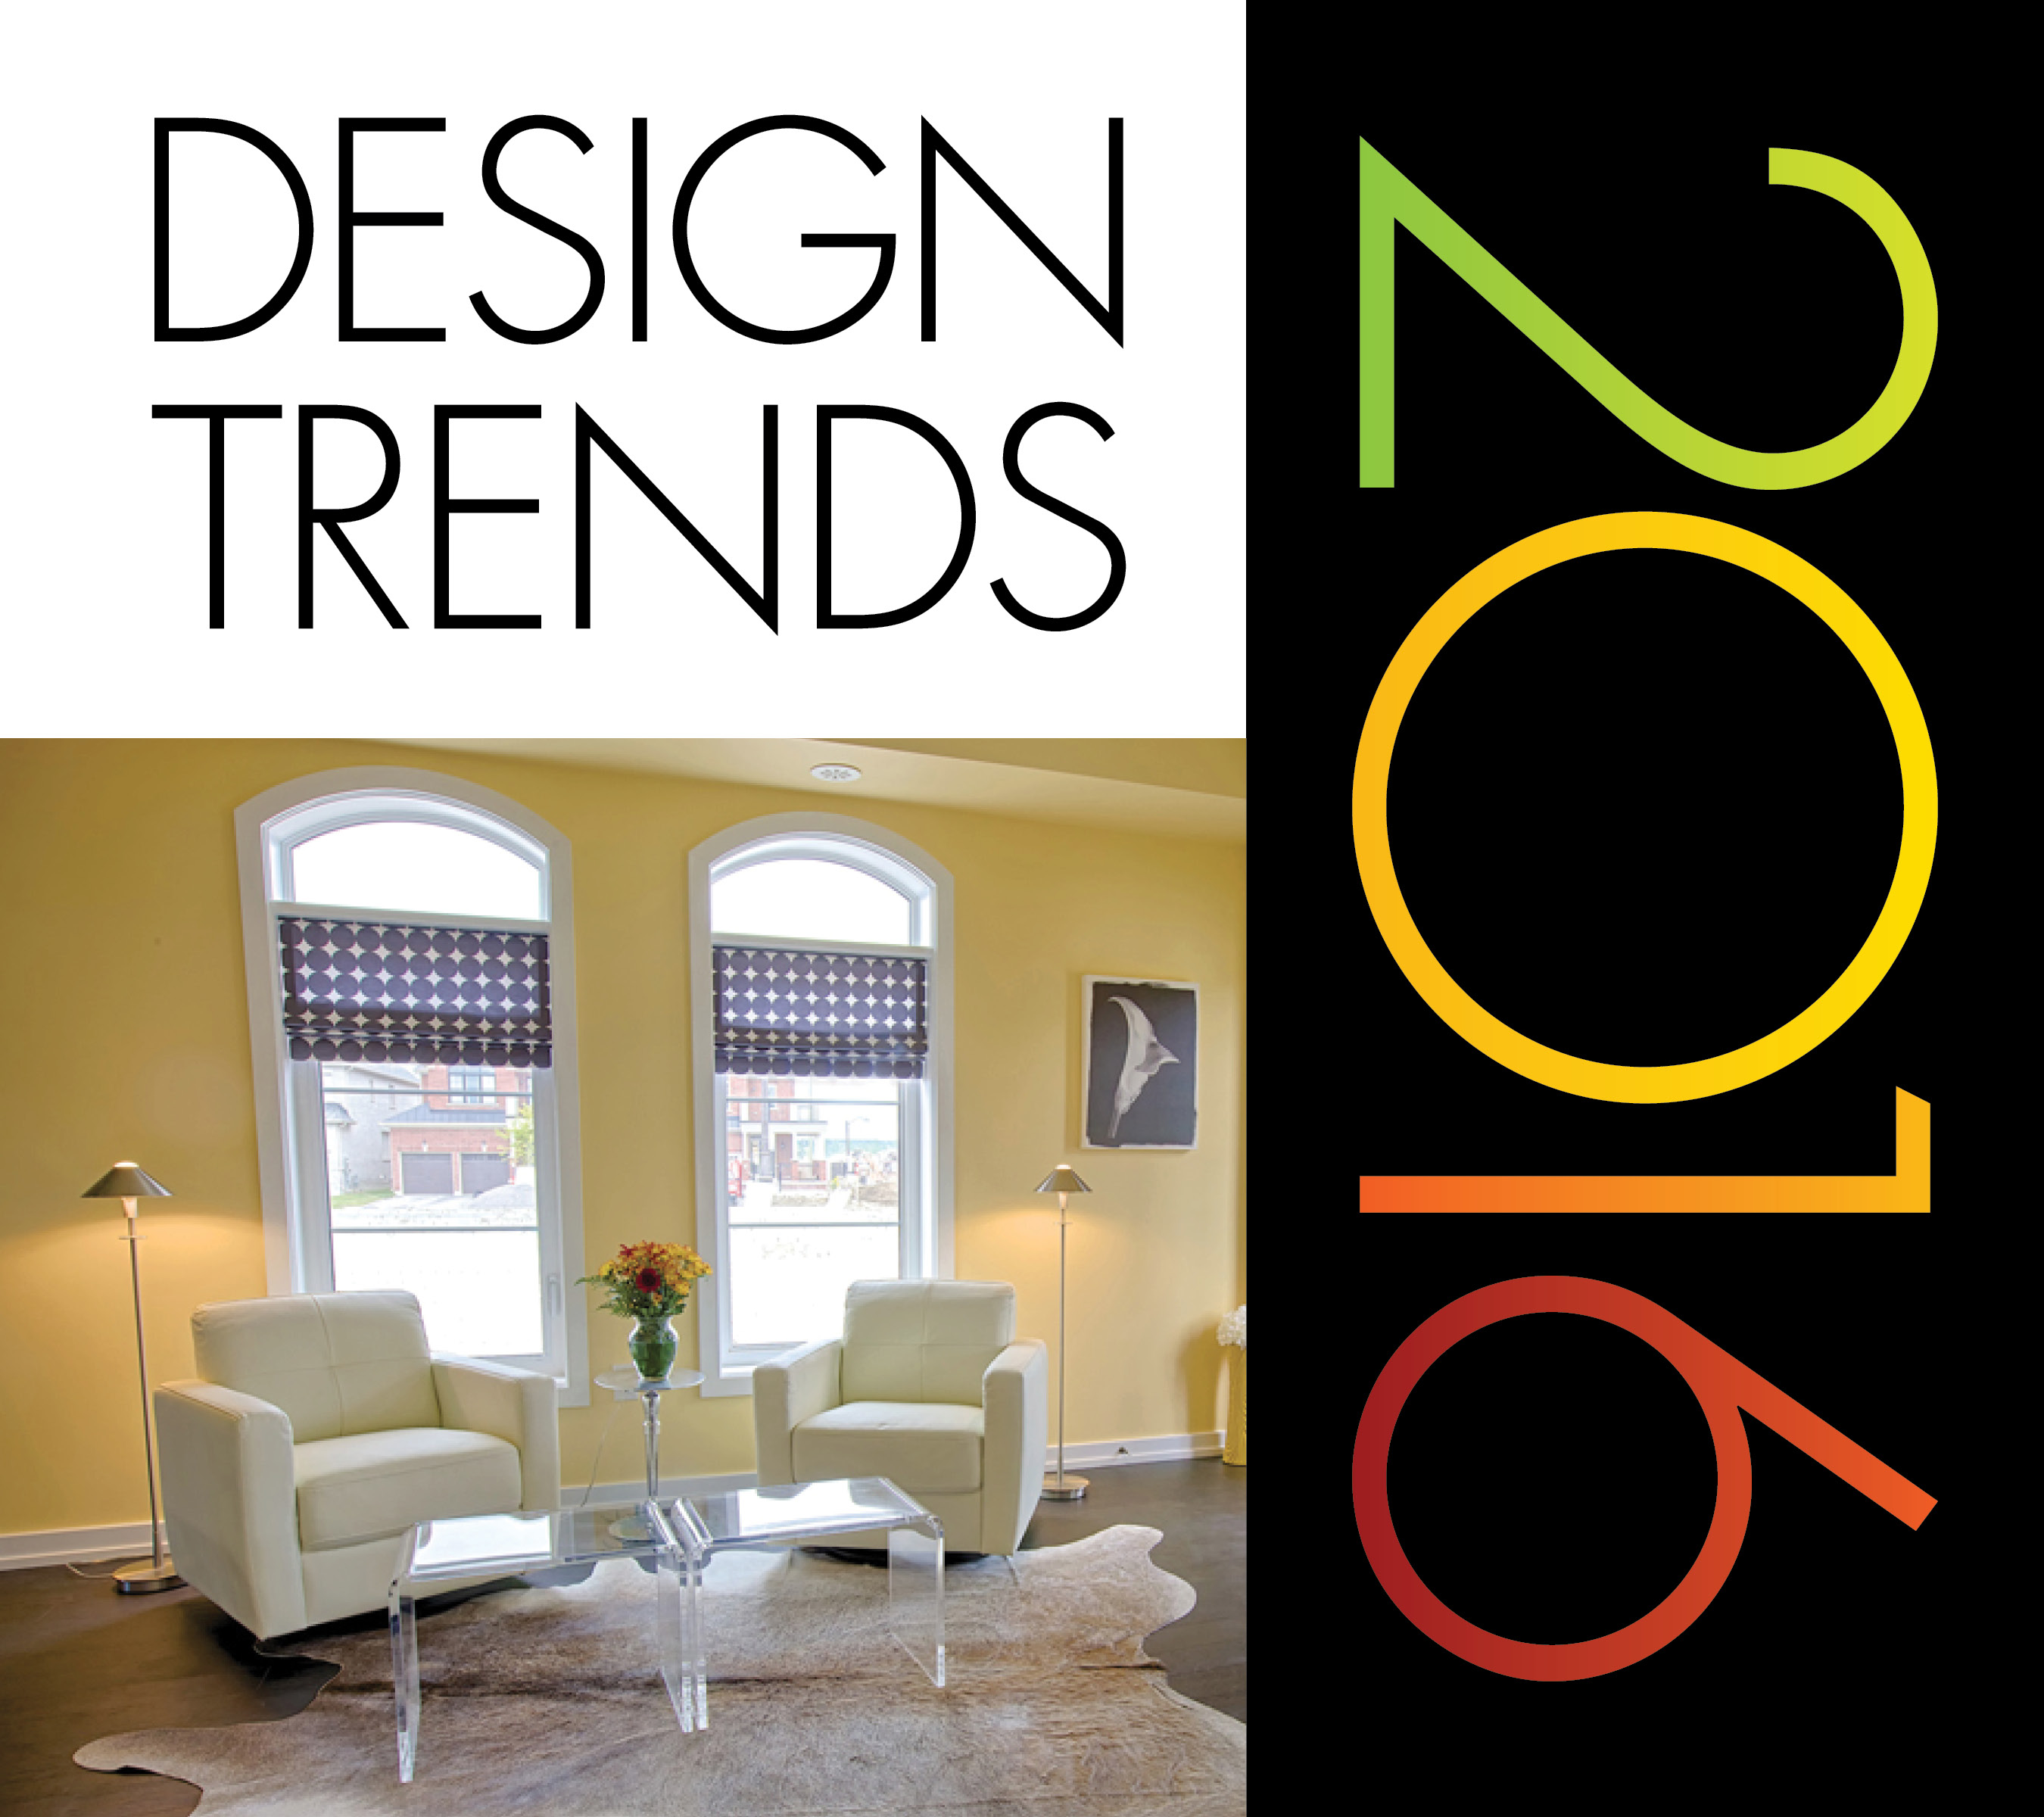 Six home d cor trends for 2016 geranium blog for Home decor 2015 trends